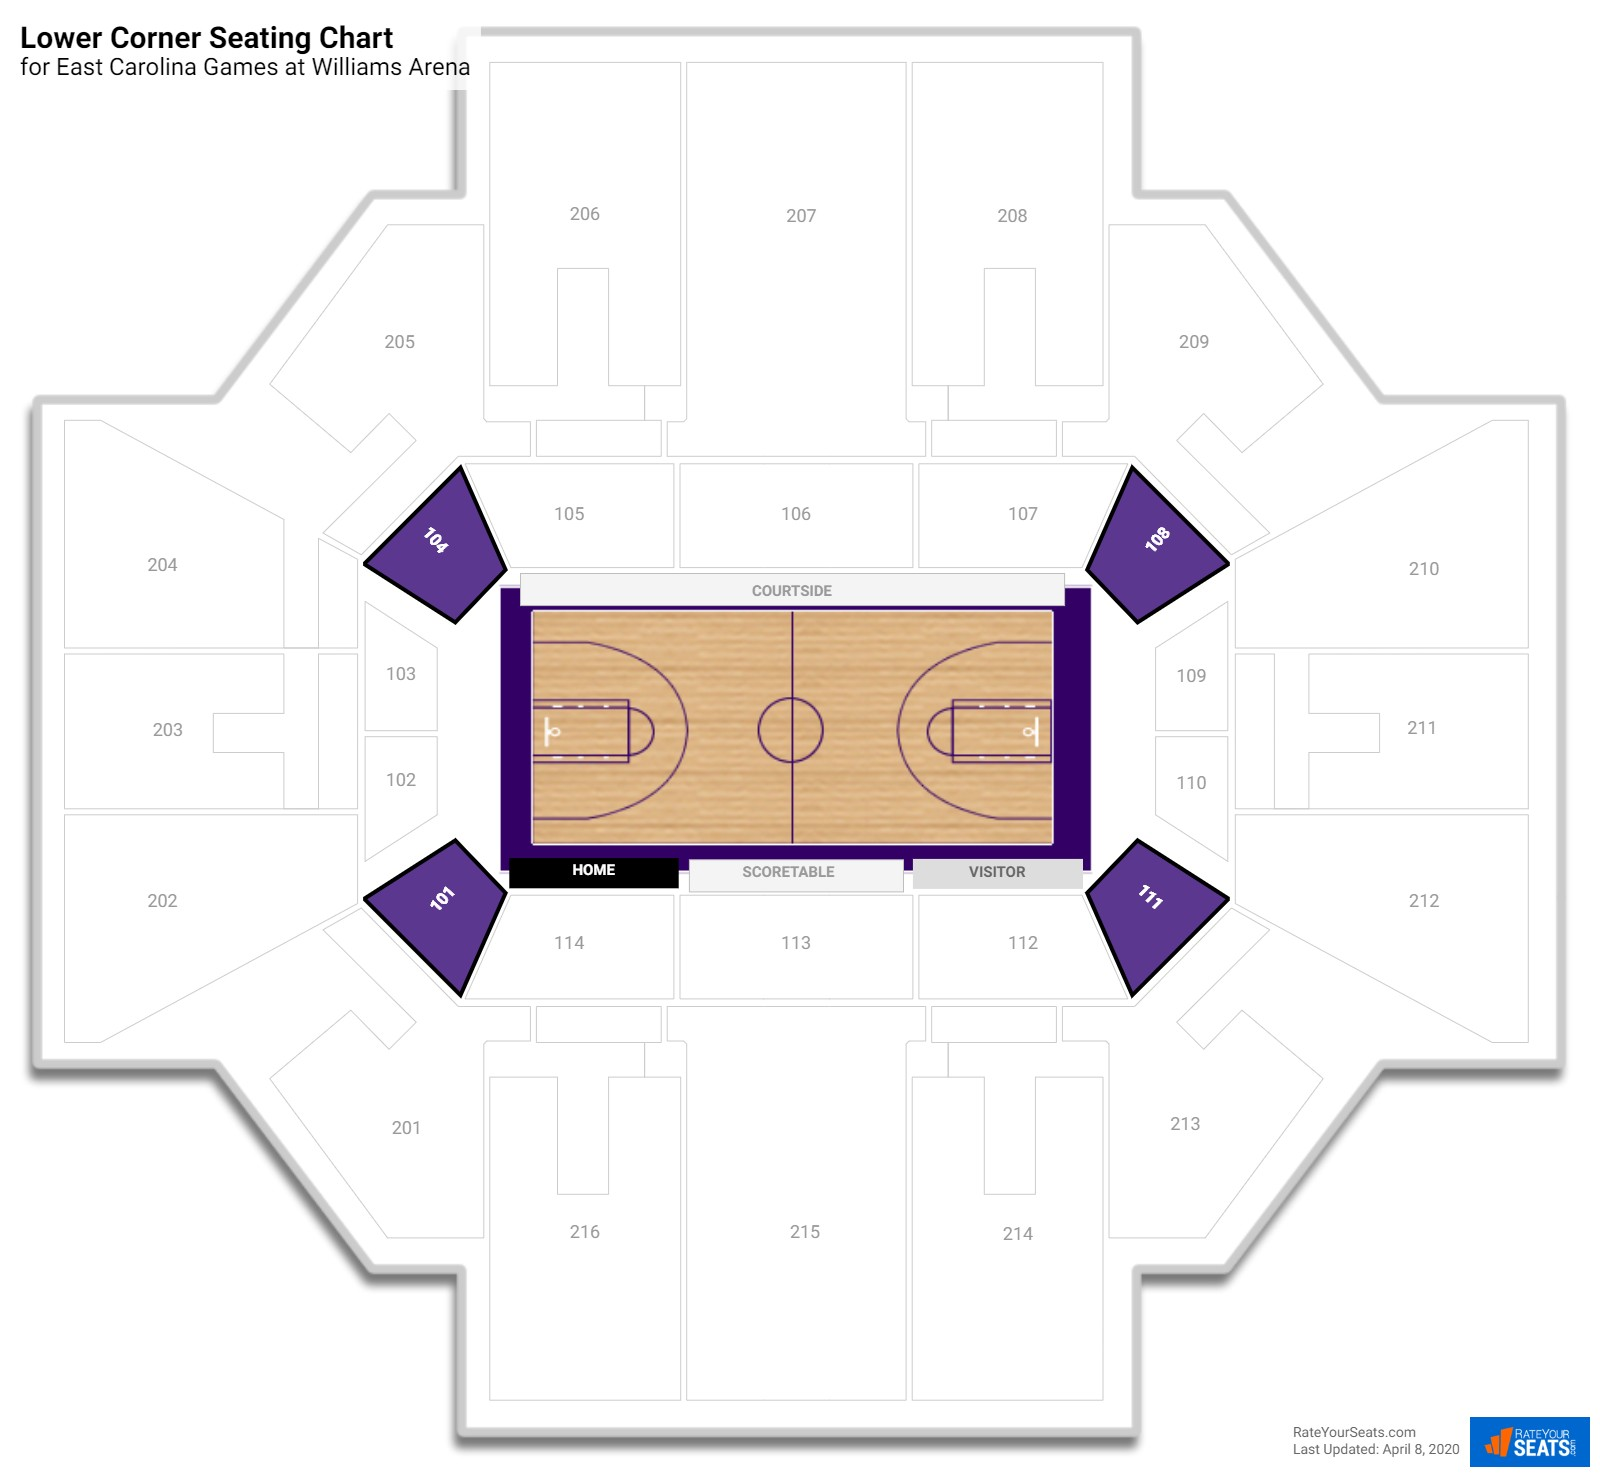 Williams Arena Lower Level Corner seating chart